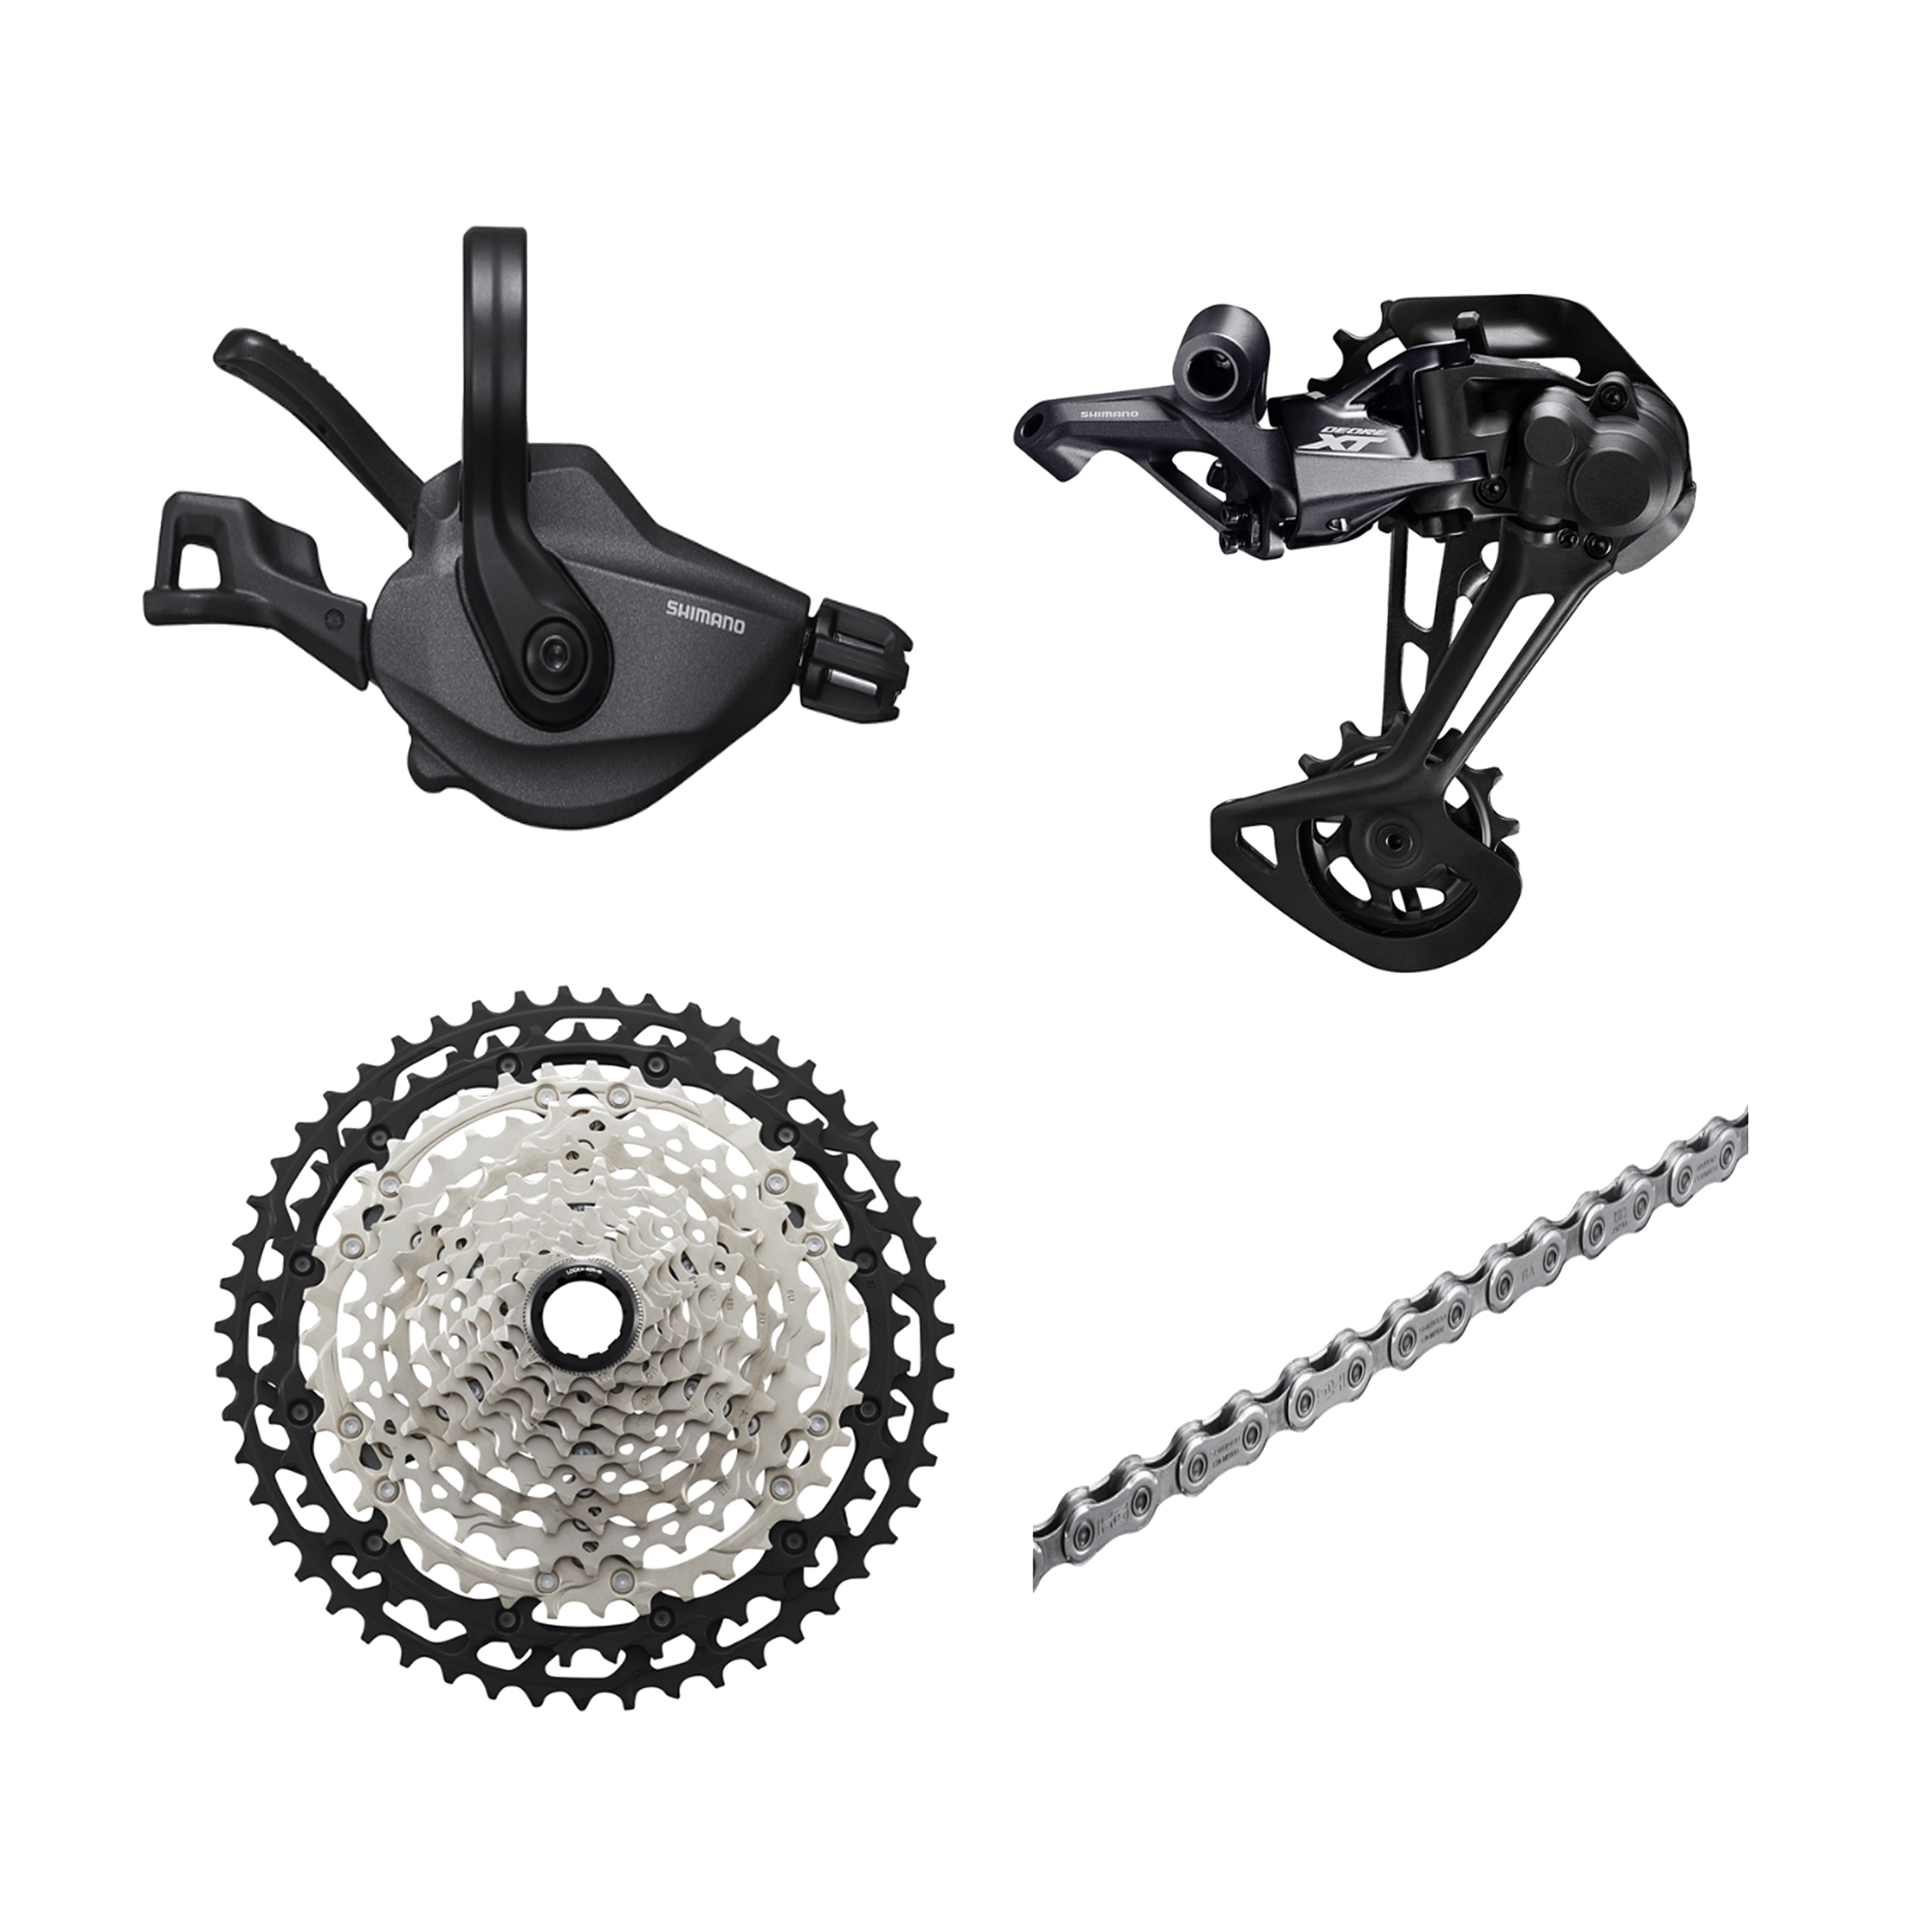 Shiman deore <font><b>xt</b></font> <font><b>M8100</b></font> mtb 12s-speed bike kit GS SGS Rear Derailleur 10-46T 10-51T image